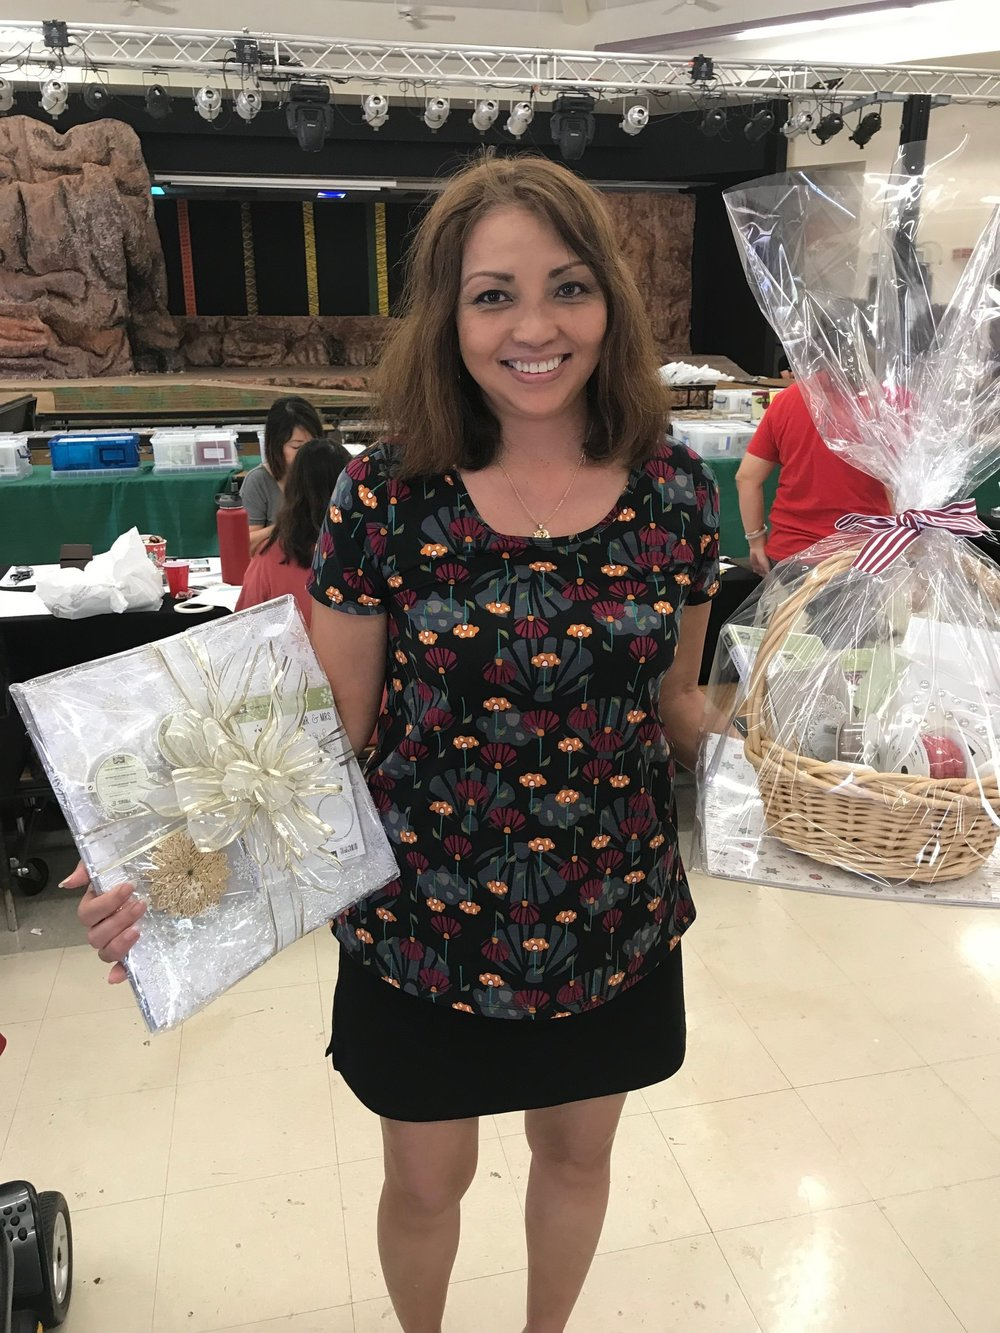 Cathy wins TWO prizes